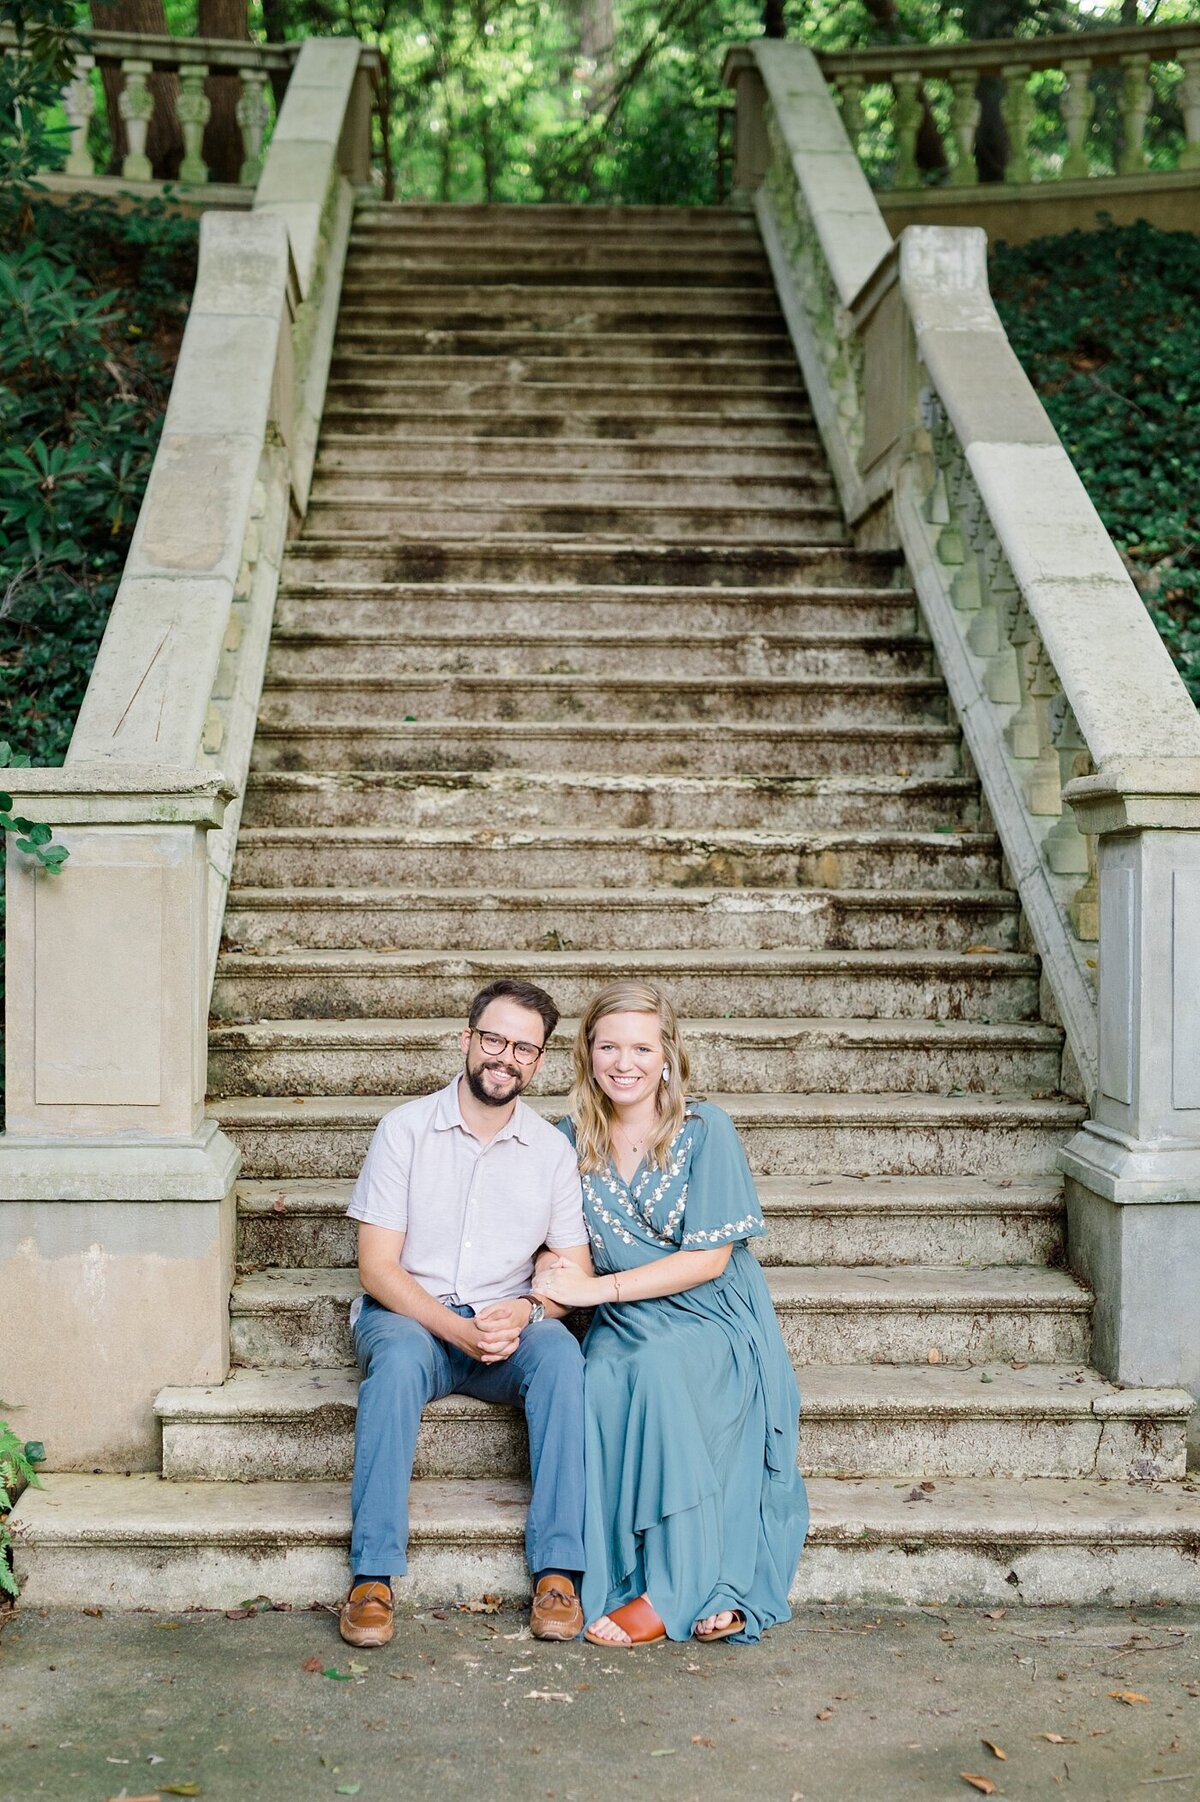 cator-woolford-gardens-engagement-wedding-photographer-laura-barnes-photo-shackelford-11